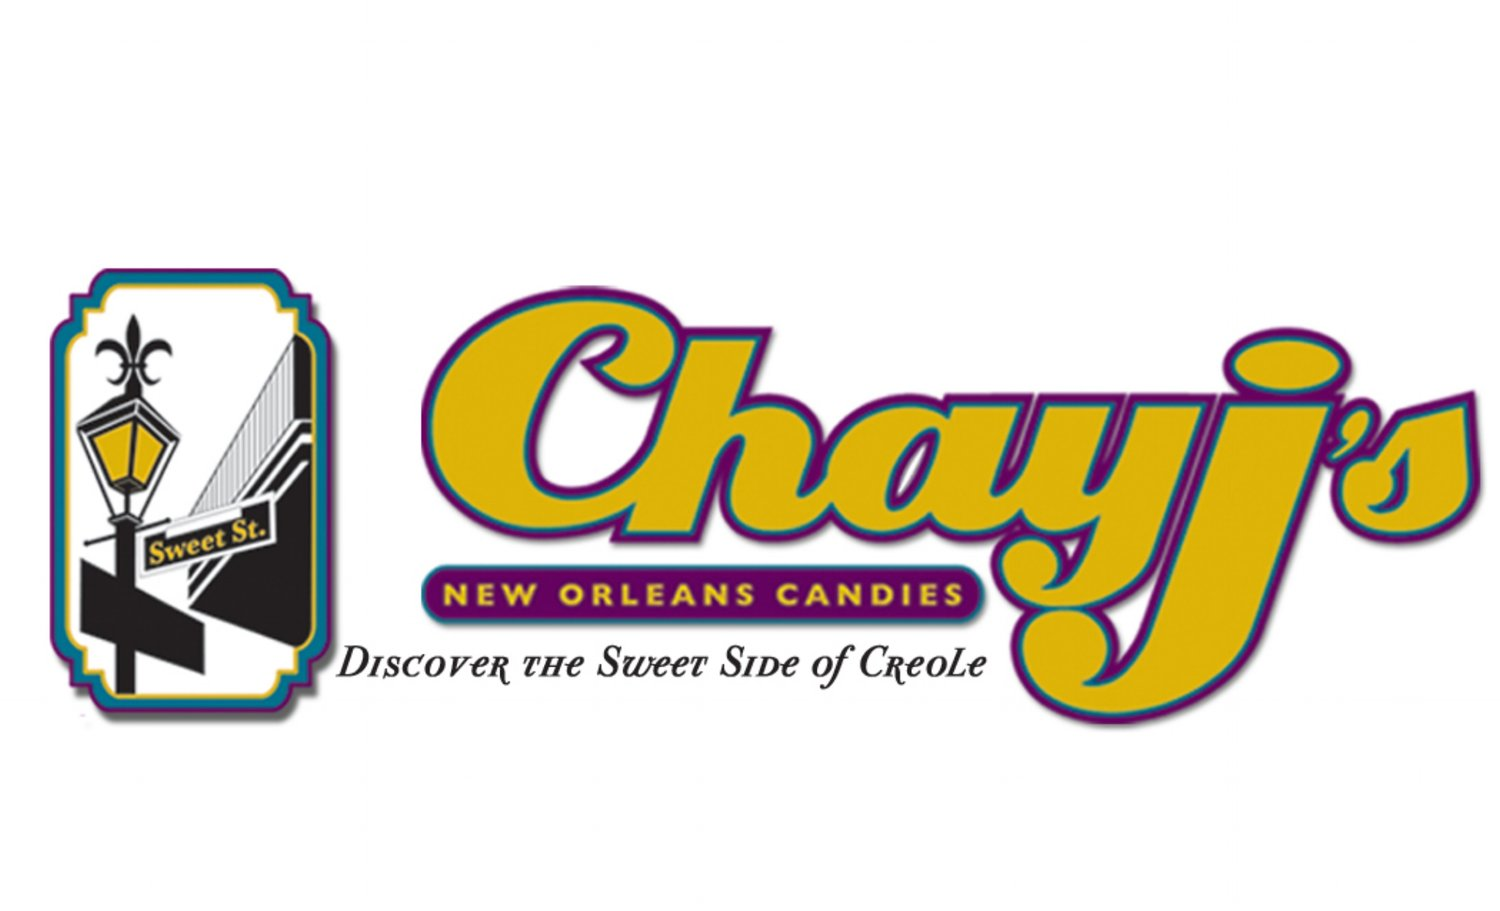 Chay J's New Orleans Candies